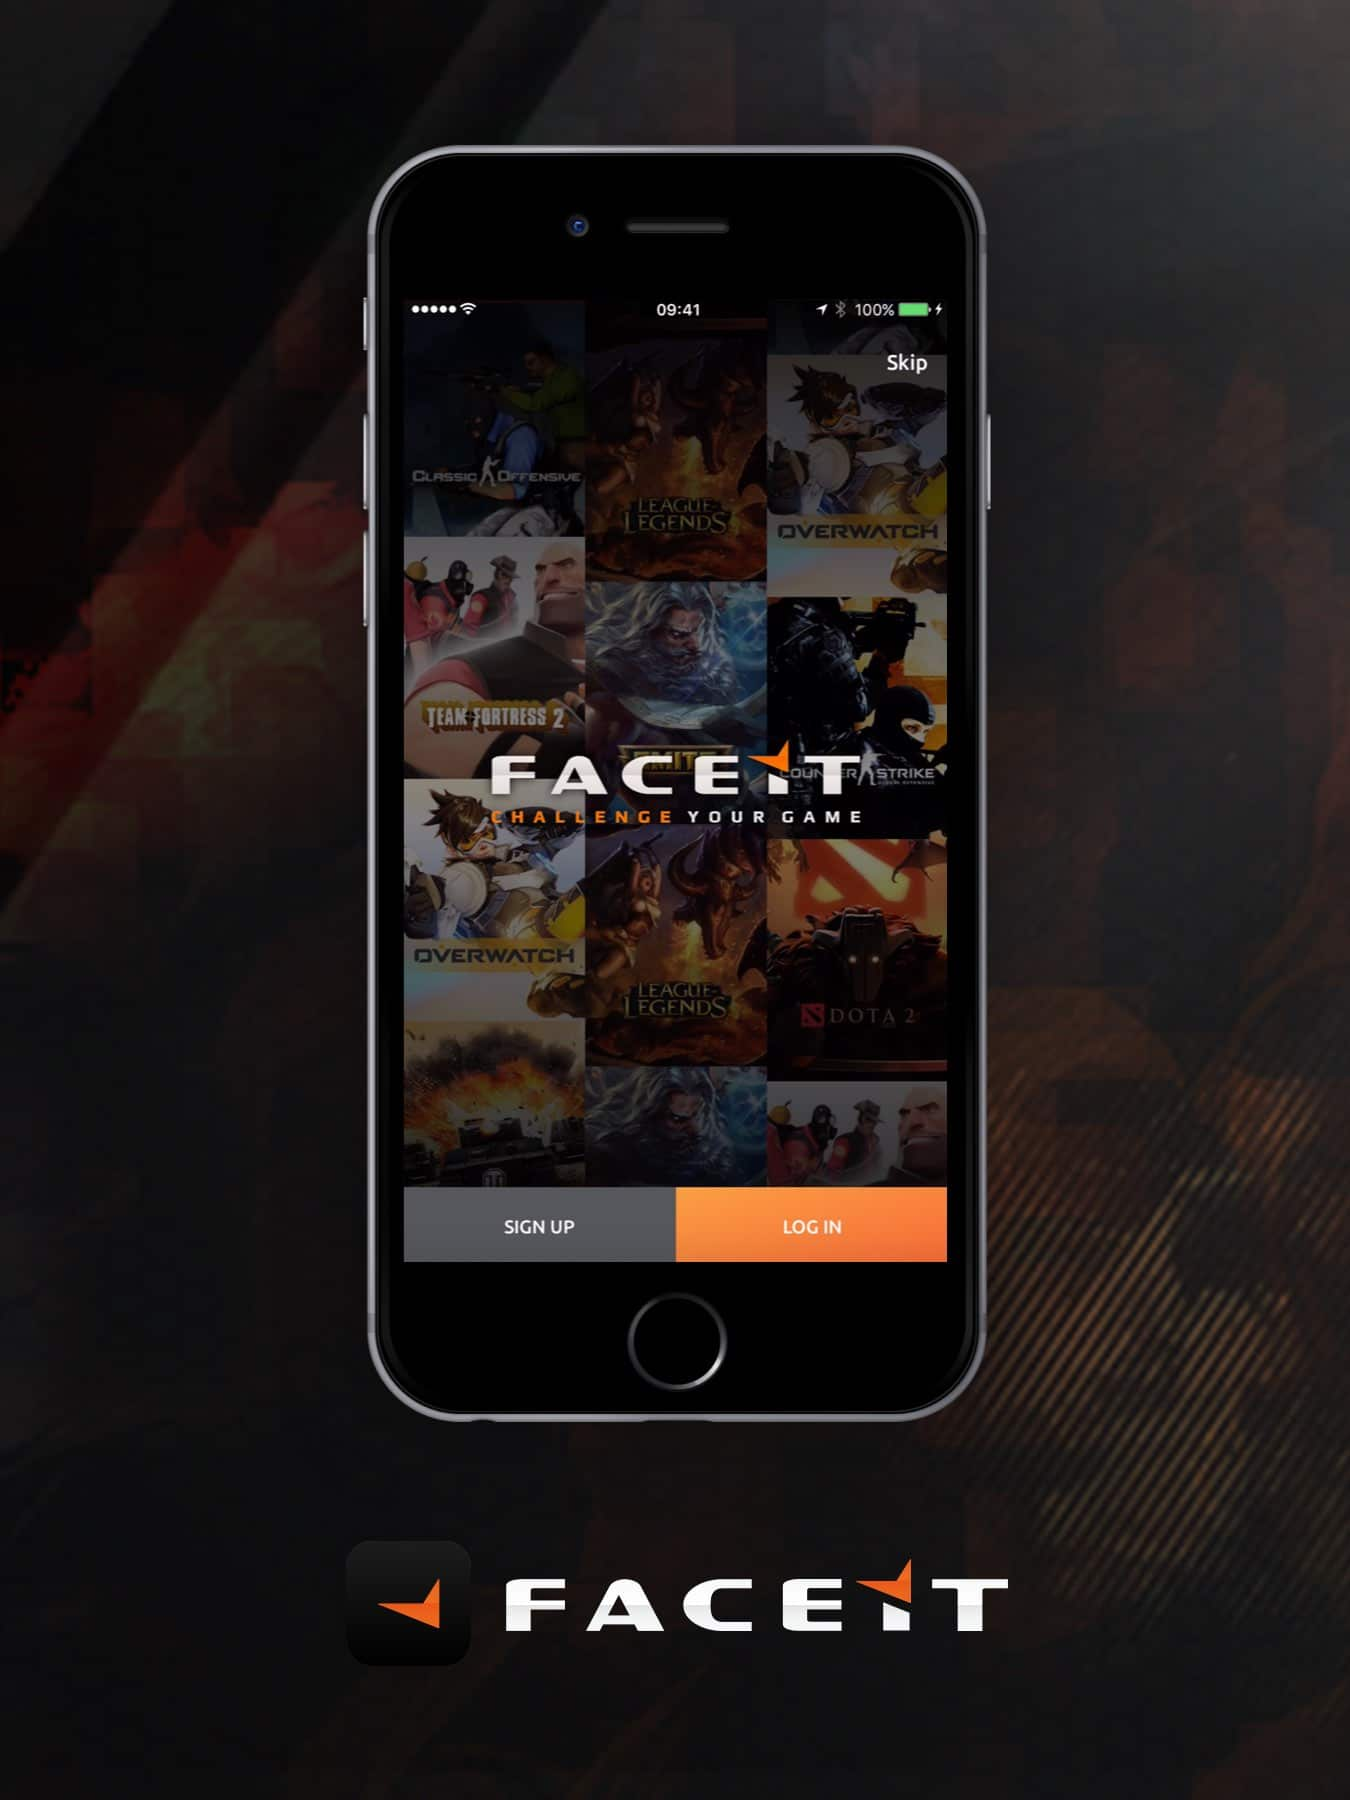 faceitapp fantasy league app ux design